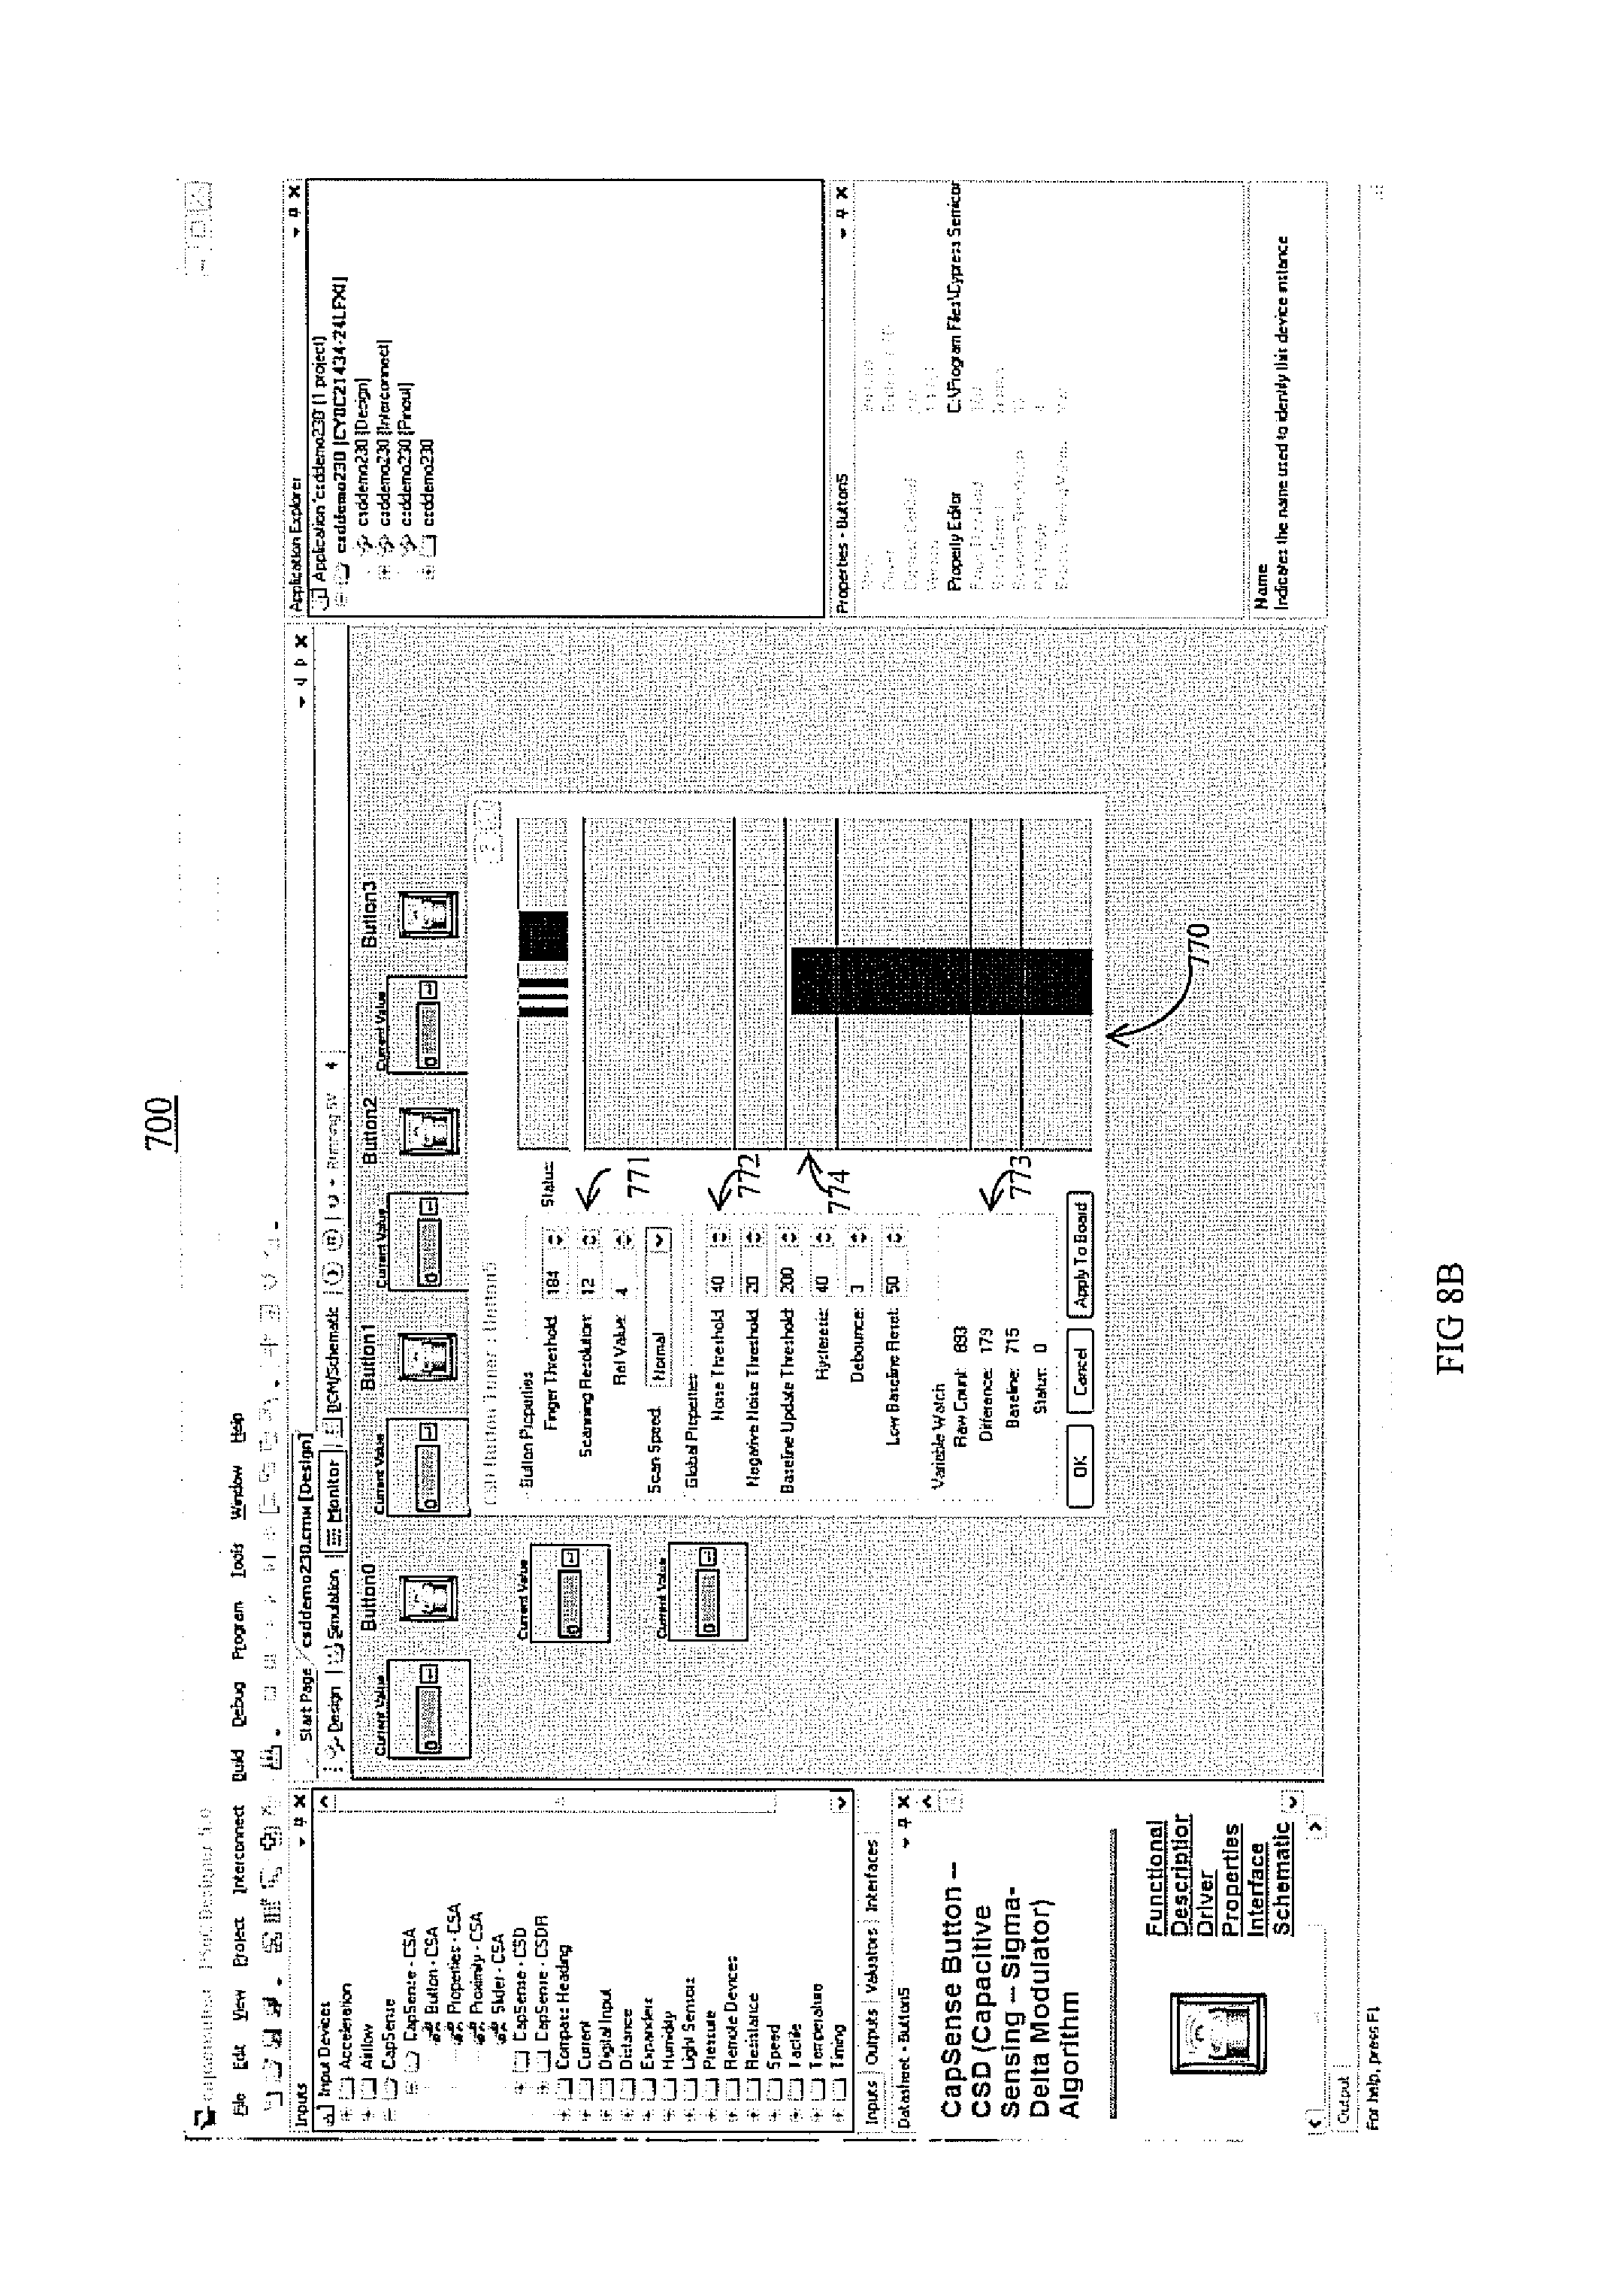 Patent Us 9720805 B1 Delco Heat Furnace Wiring Diagram In Addition Worksheets And 0 Petitions